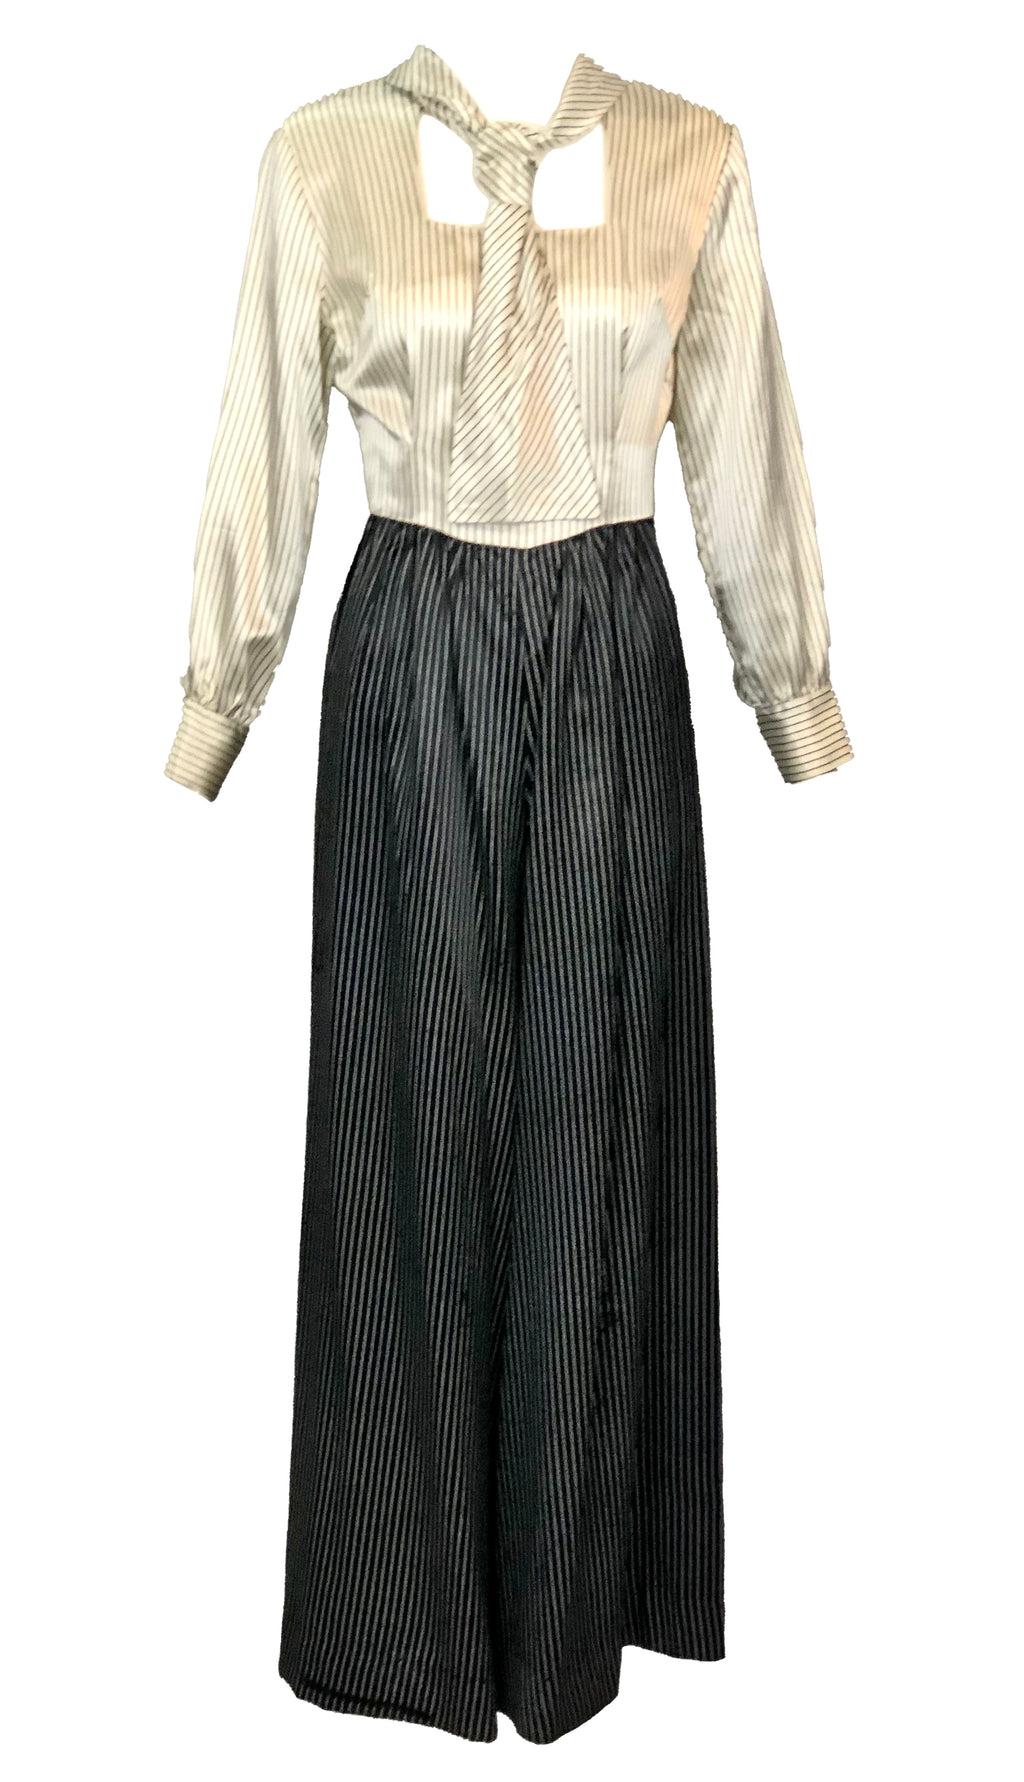 60s Black and White Pinstripe Jumpsuit 99 AND UNDER FRONT 1 of 4